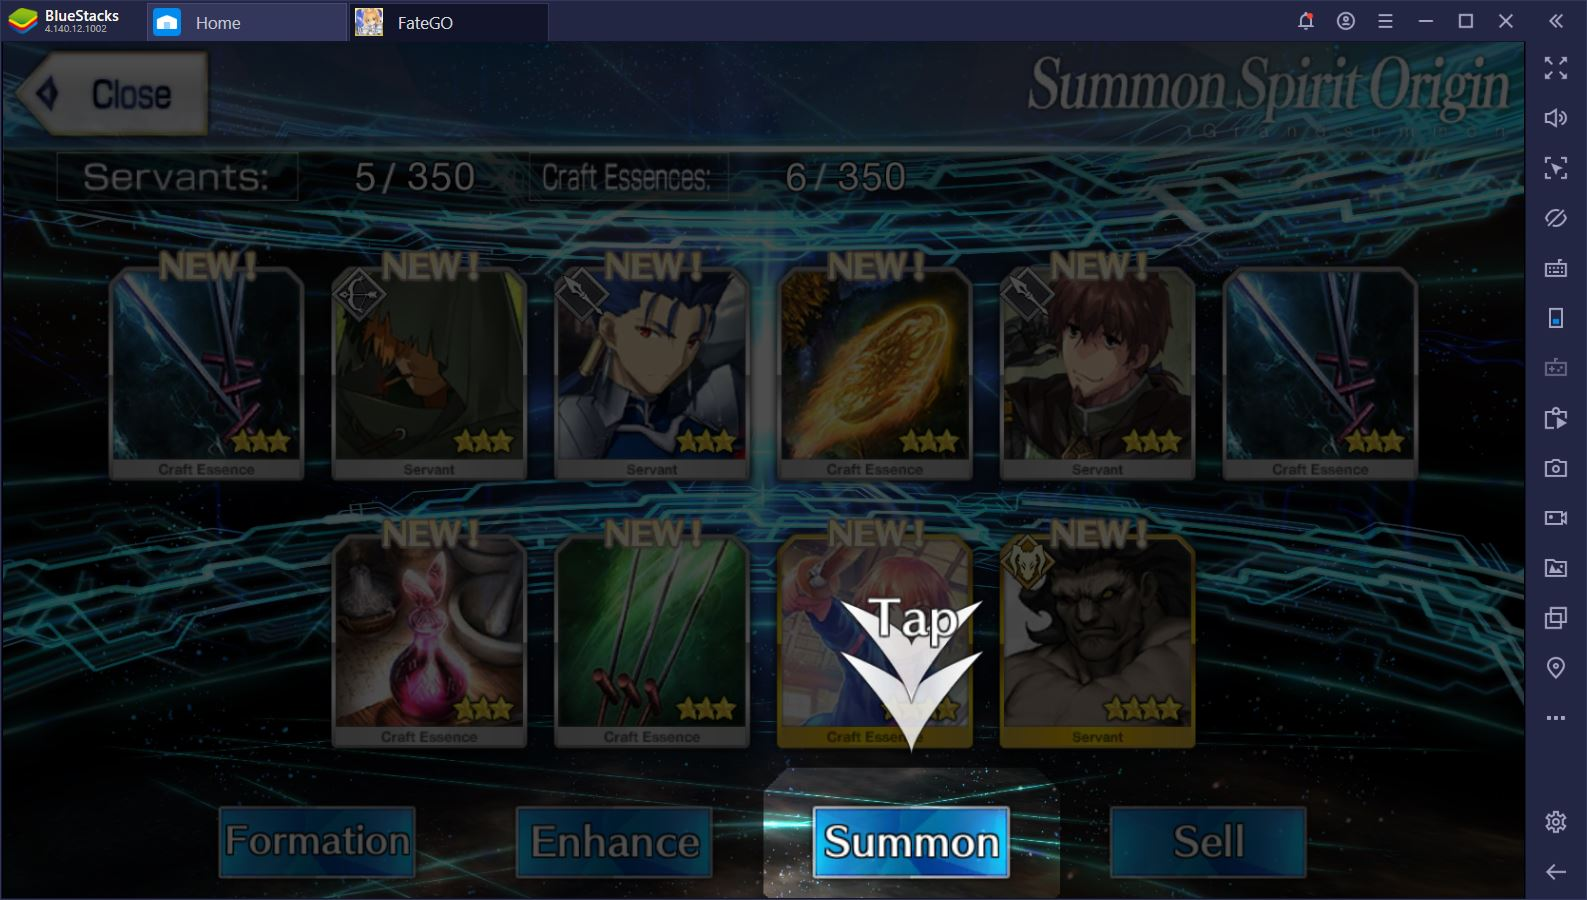 Fate/Grand Order: How to Re-Roll Quickly with BlueStacks